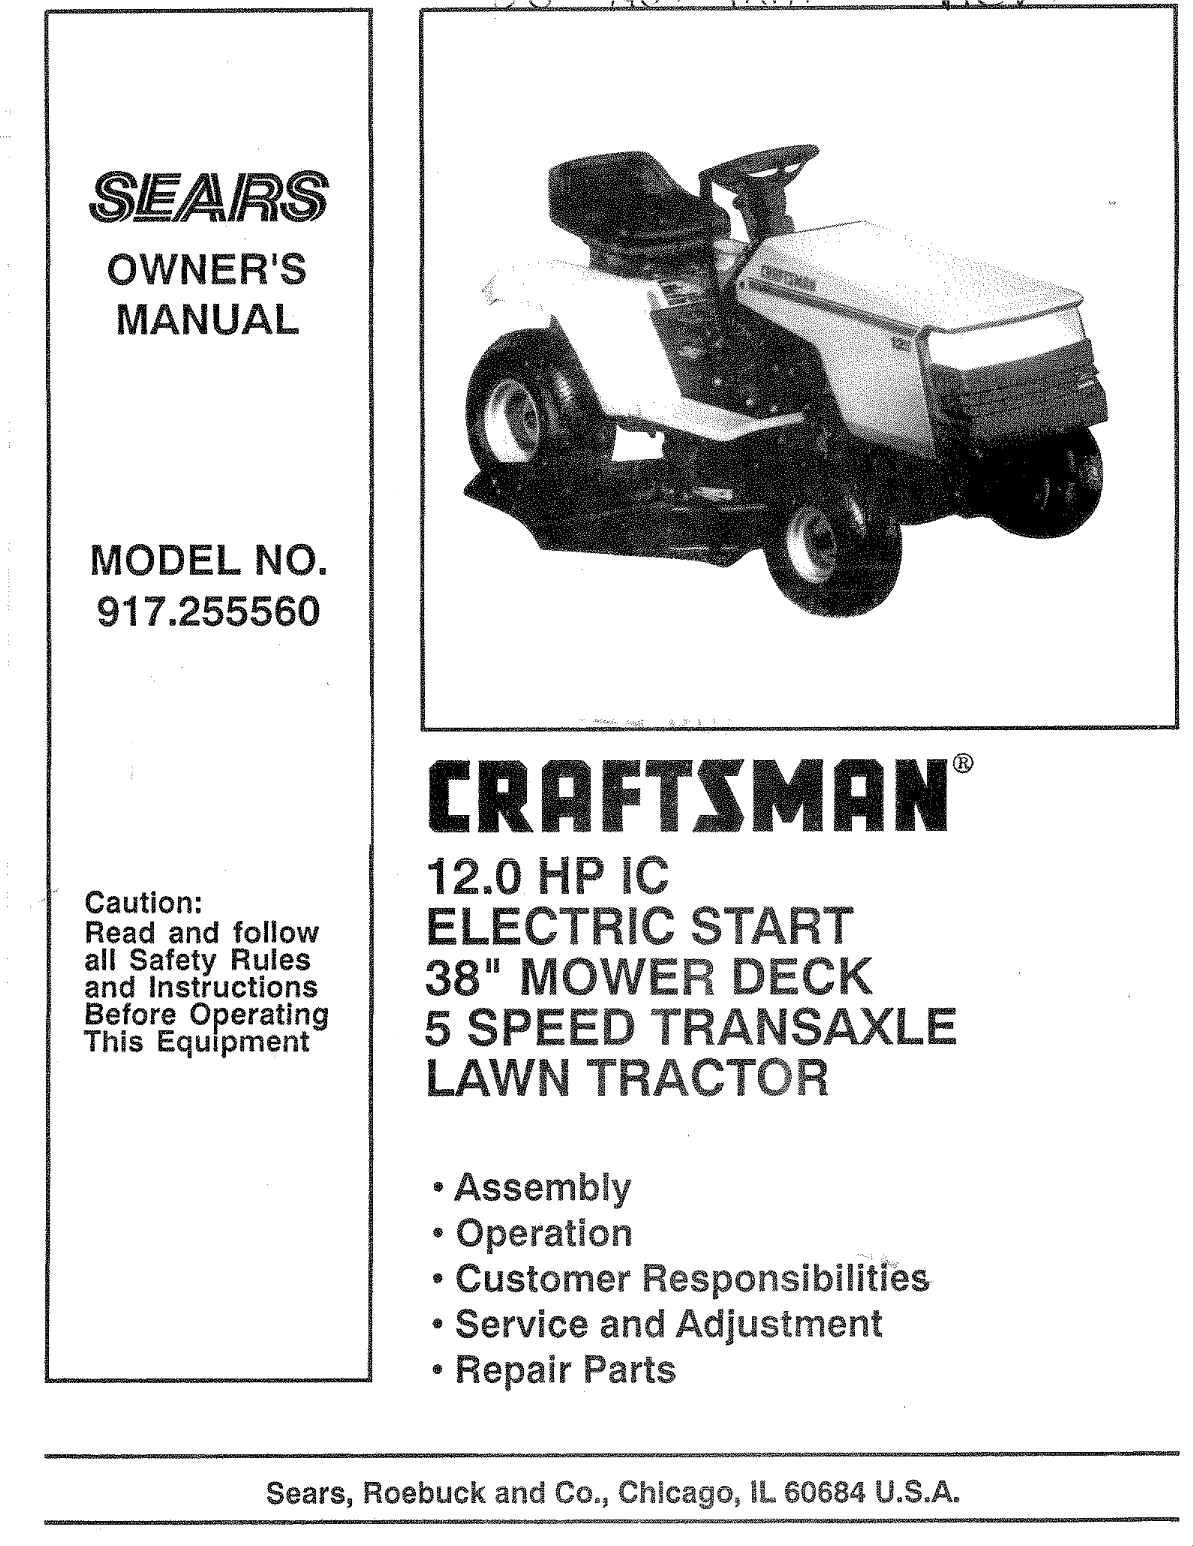 Craftsman 917255560 User Manual Lawn, Tractor Manuals And Guides ...